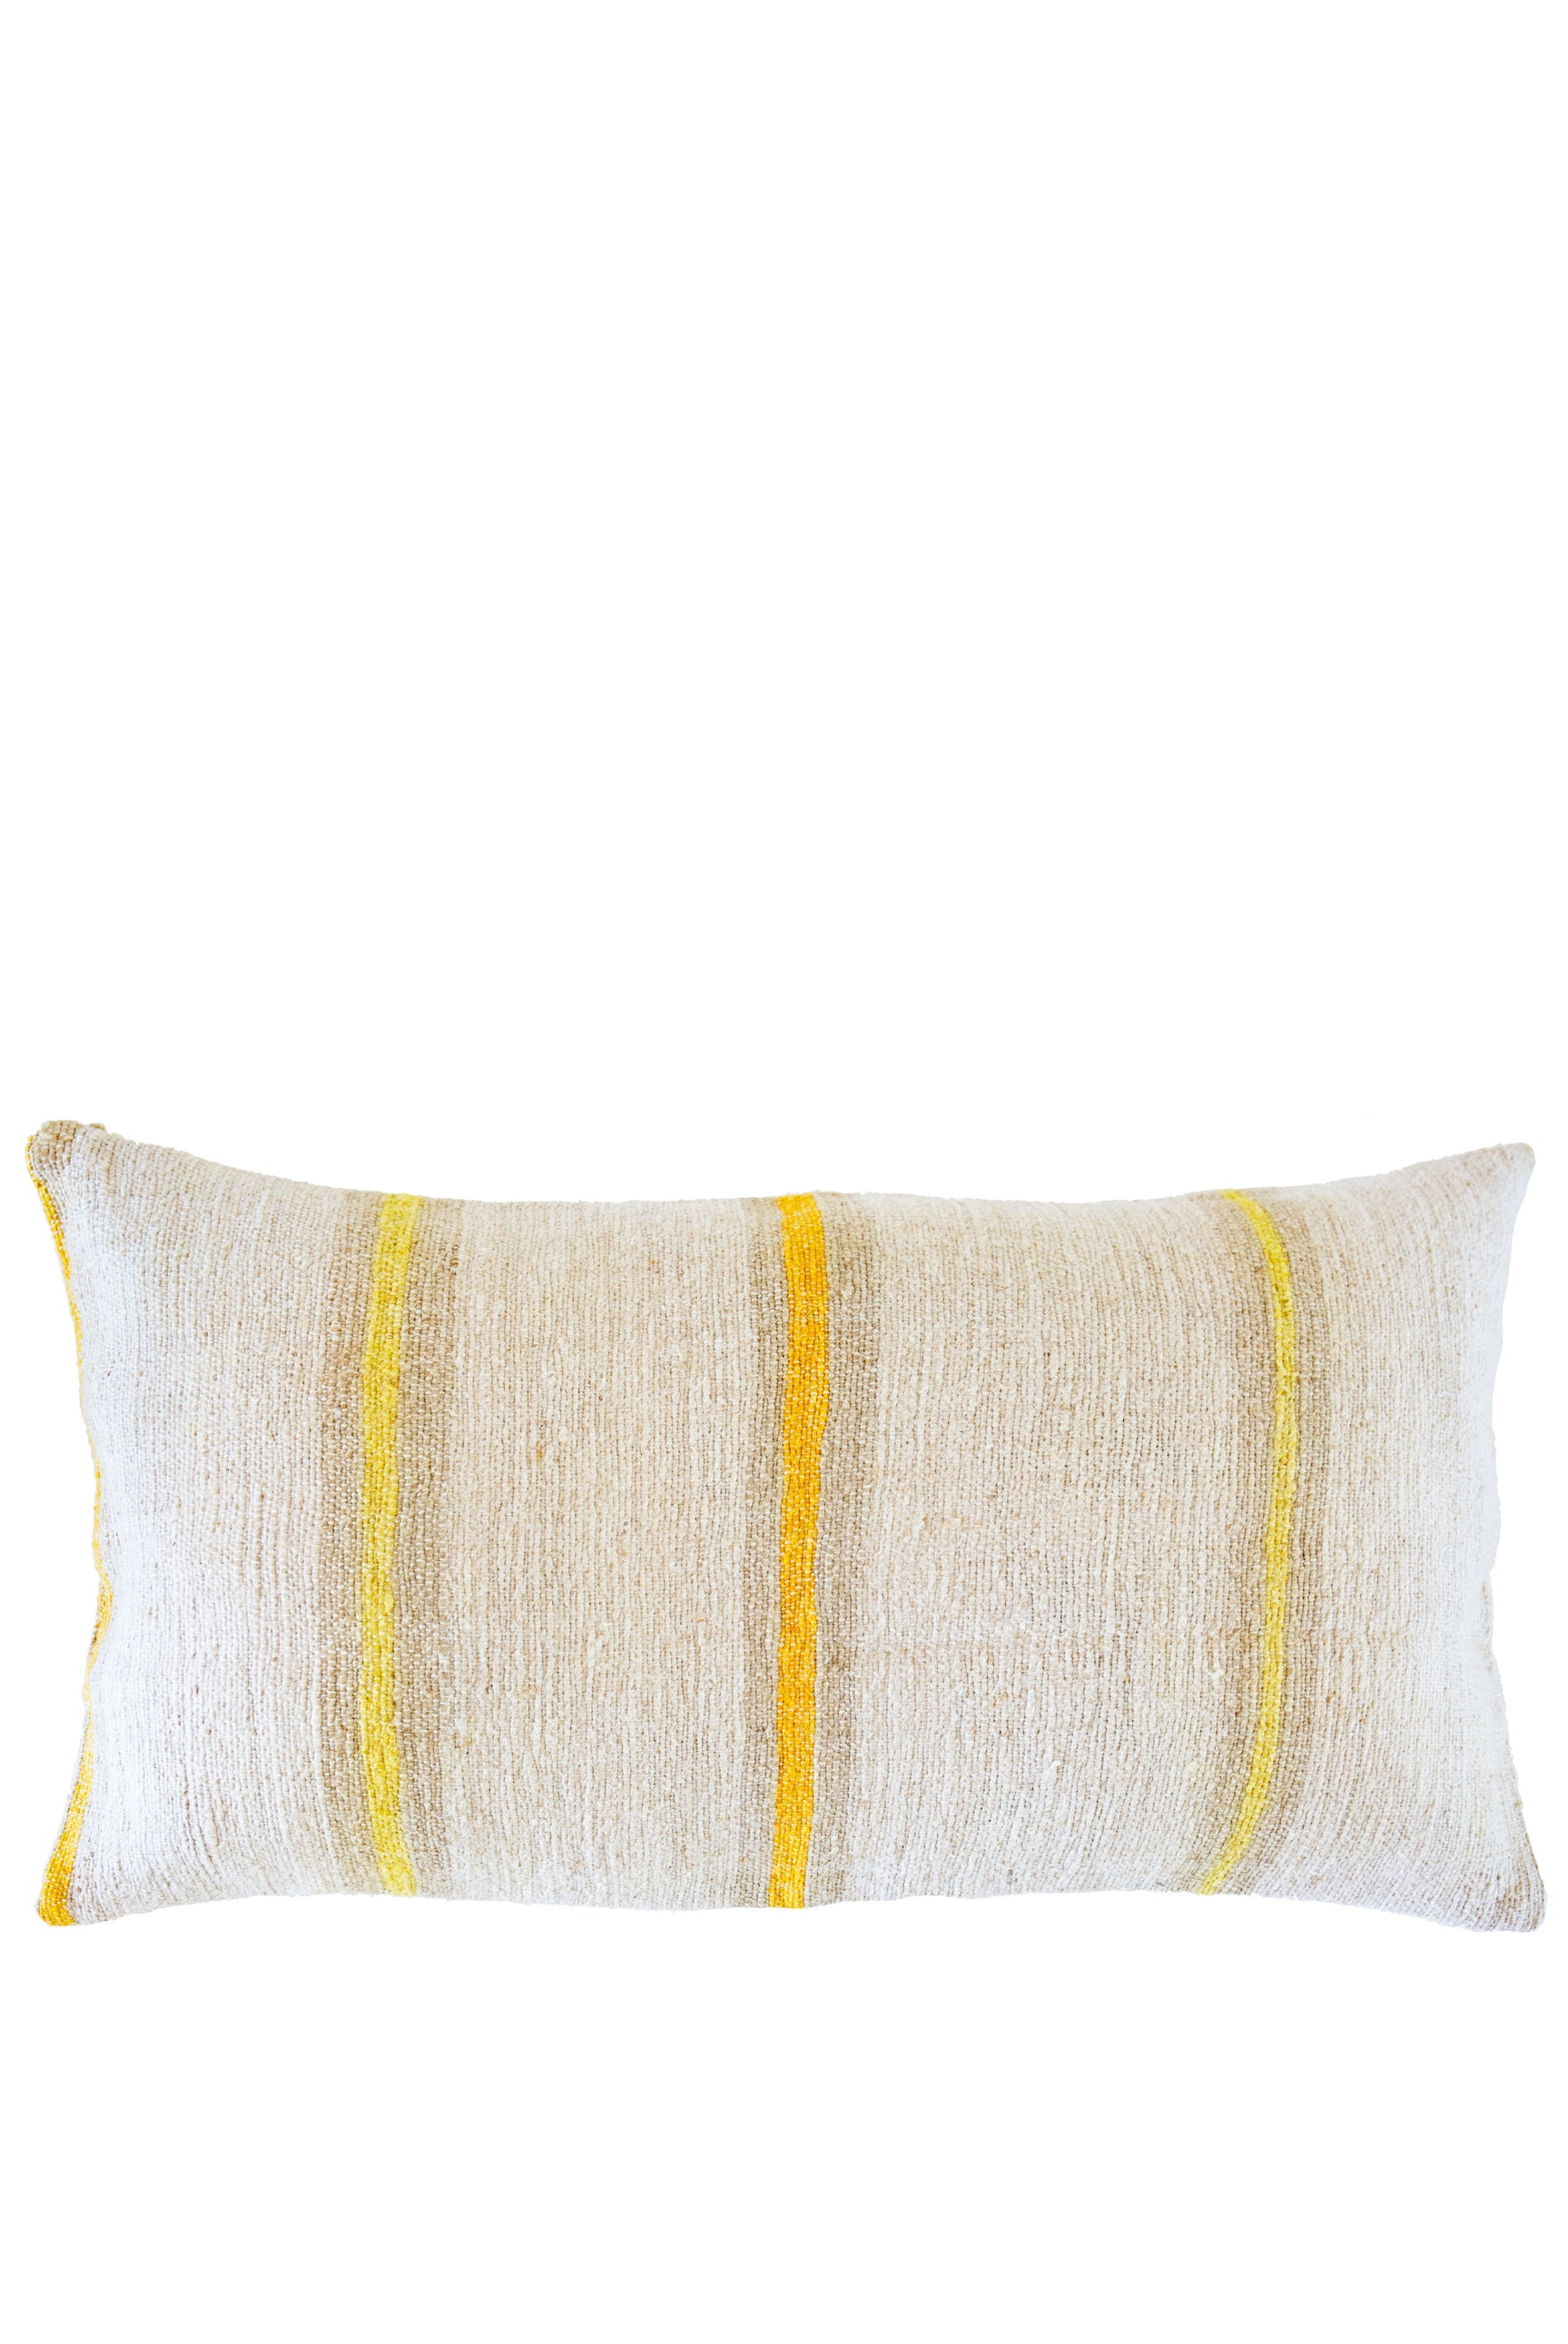 Sunride Turkish Kilim Cushion